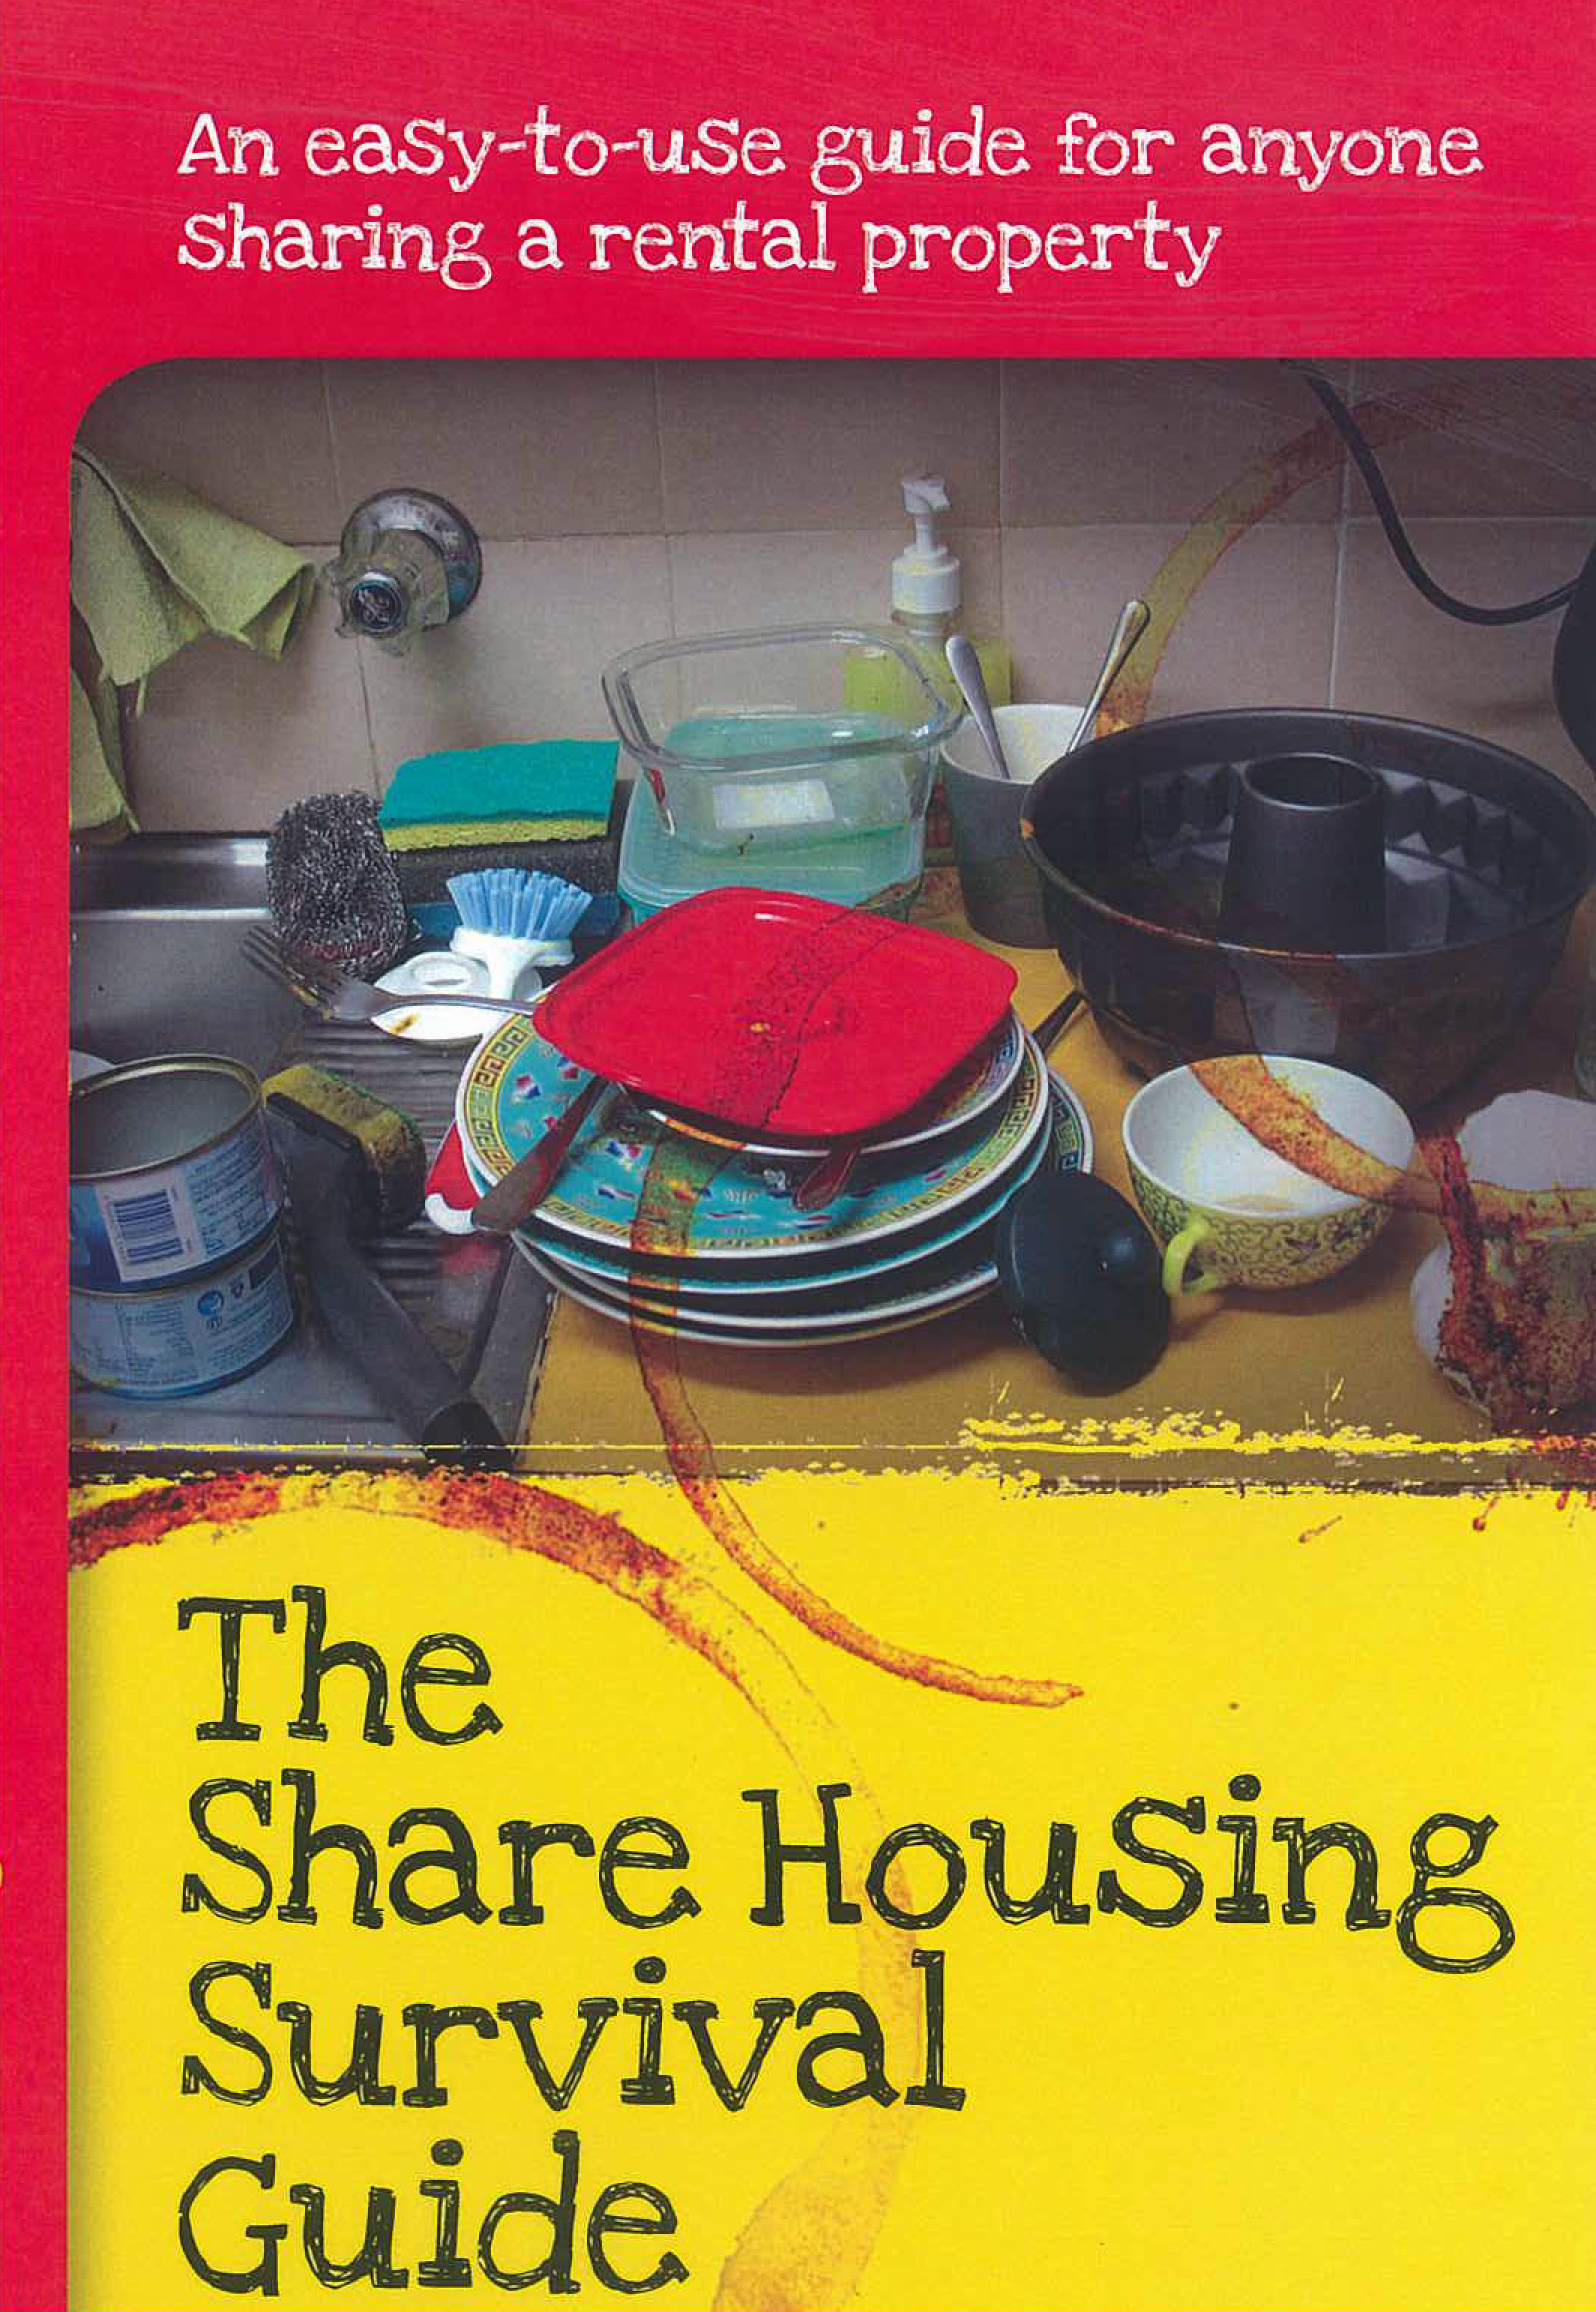 Share housing survival guide Cover